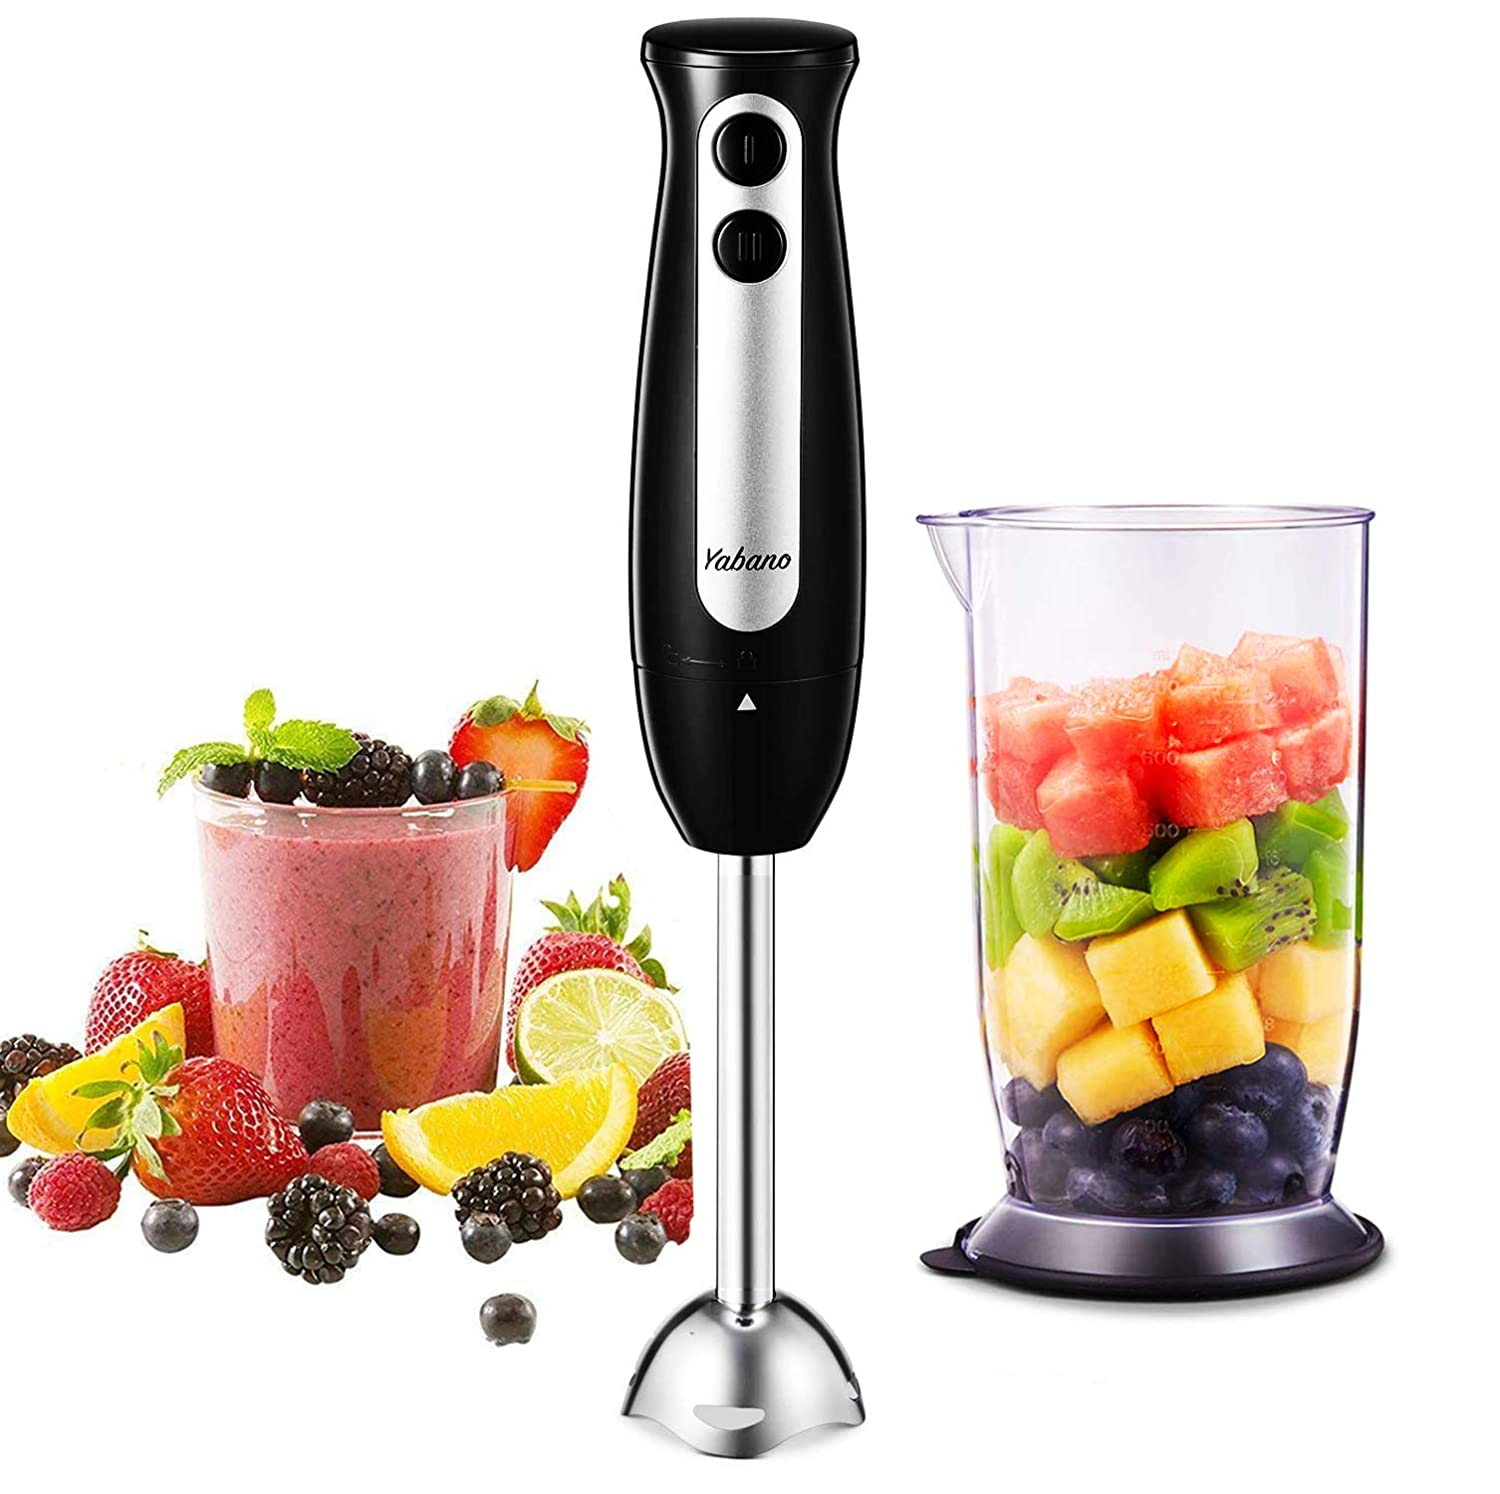 Immersion Blender, Yabano 2 in 1 Hand Blender Stick with 24oz Beaker, 2-Speed Detachable Stainless Steel Handheld Blender, Ergonomic Handle, for Baby Food, Sauces, Soup and Juices, BPA Free